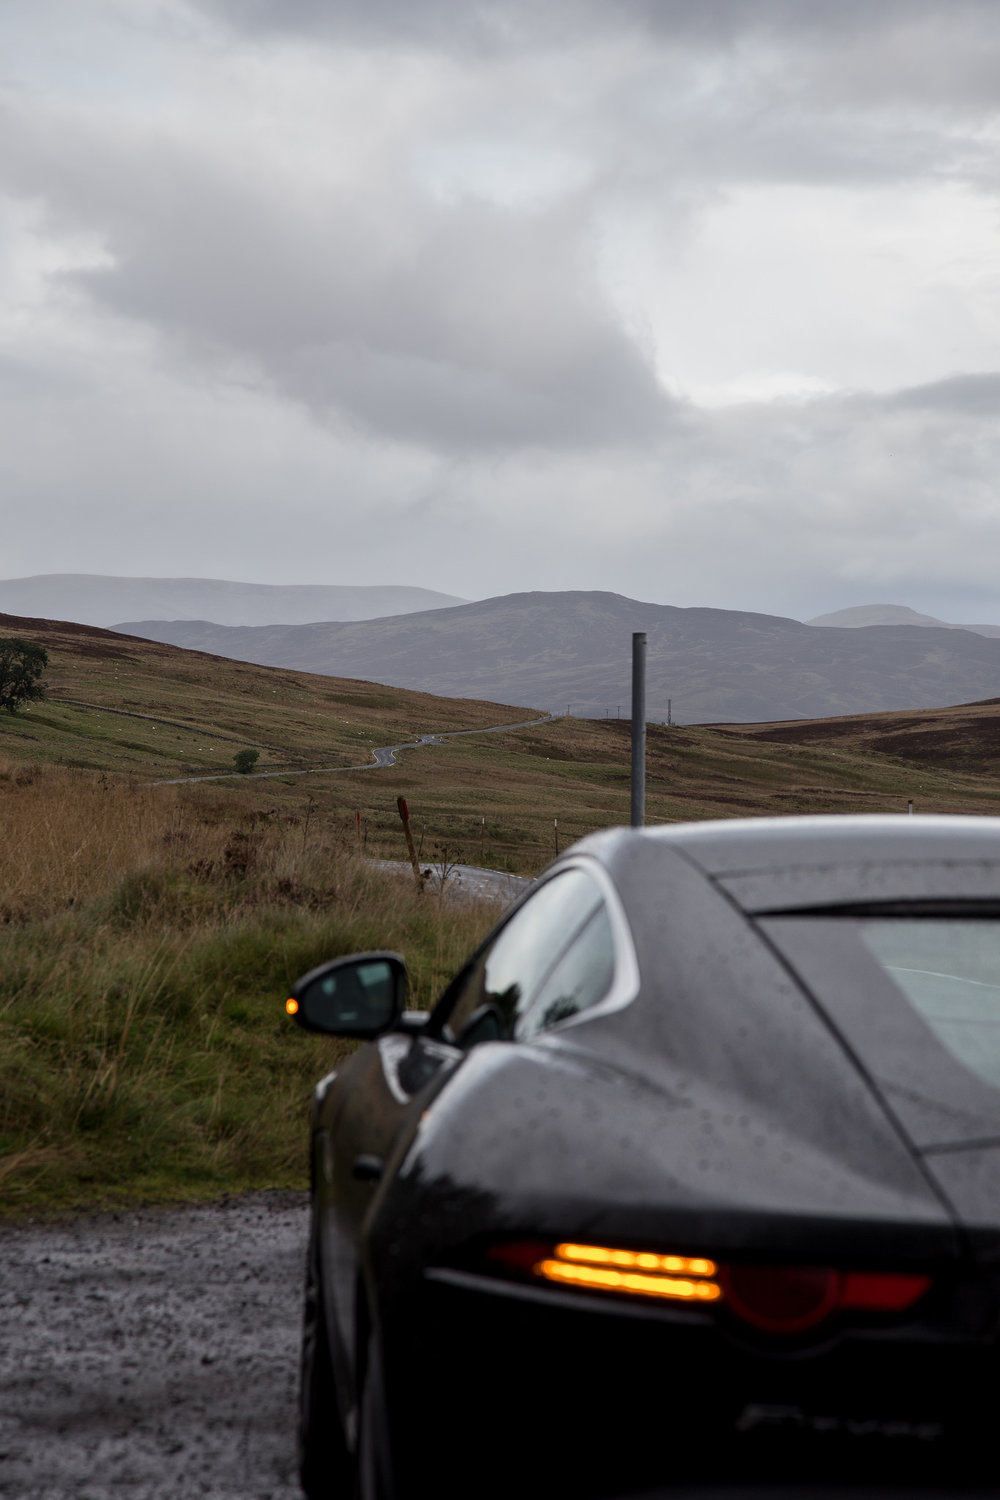 The undeniably sexy Jaguar F-Type. Equally as alluring was this road.